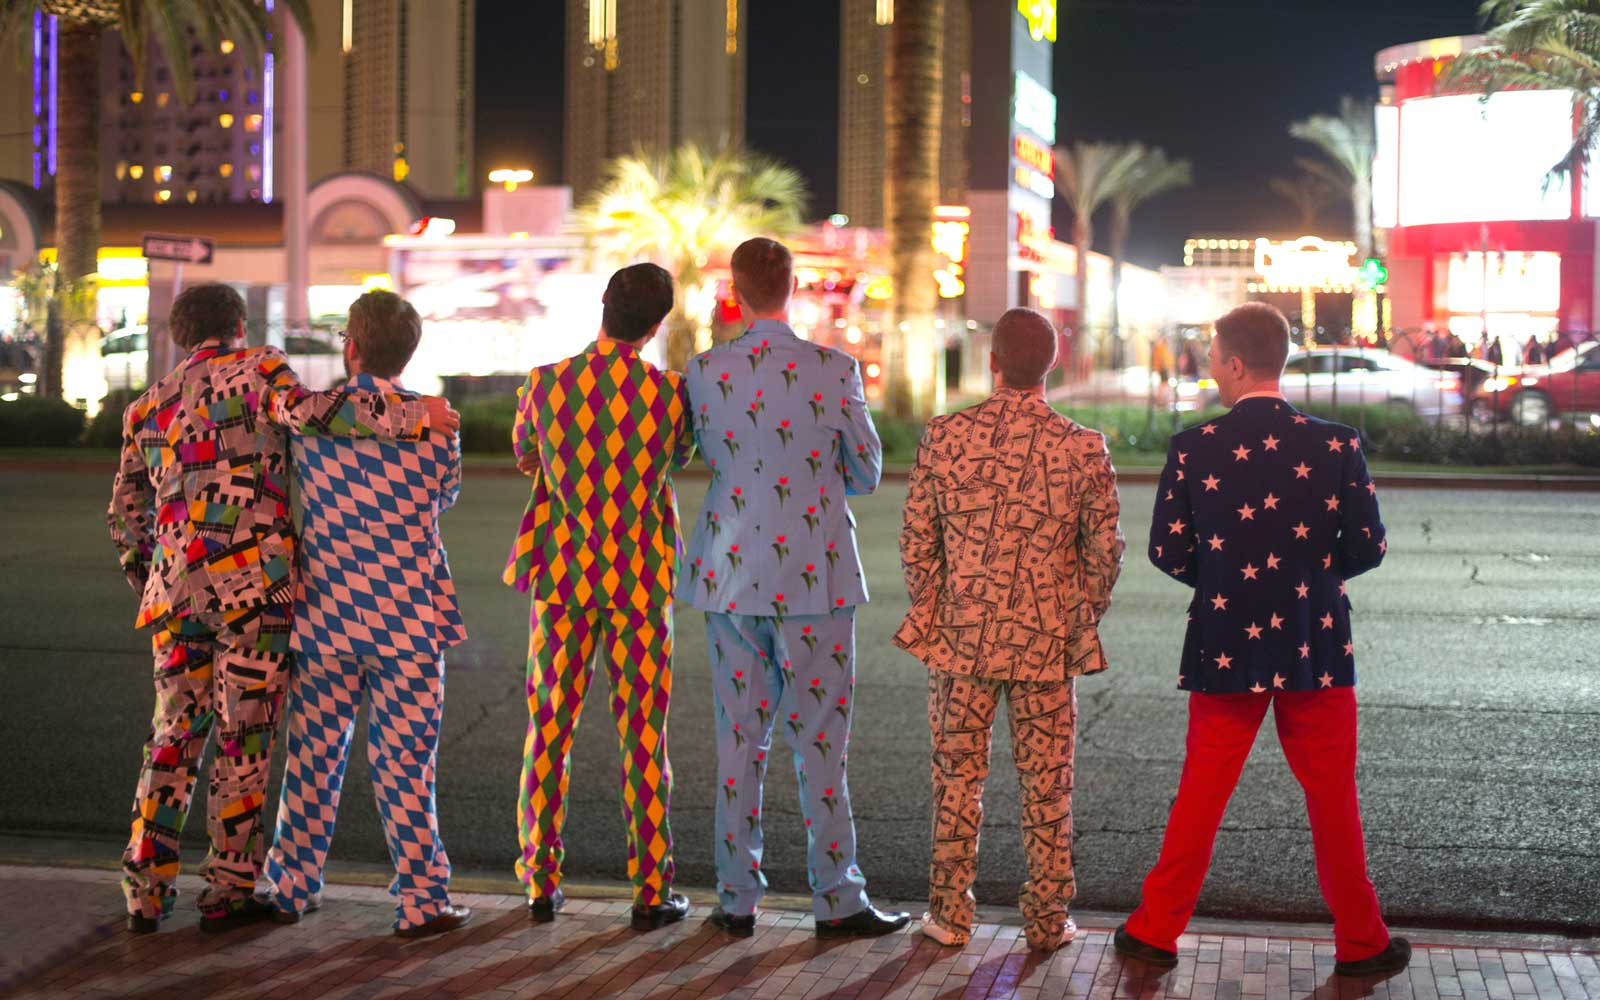 Las Vegas Bachelor Party Ideas: Where to Stay, Eat and Drink